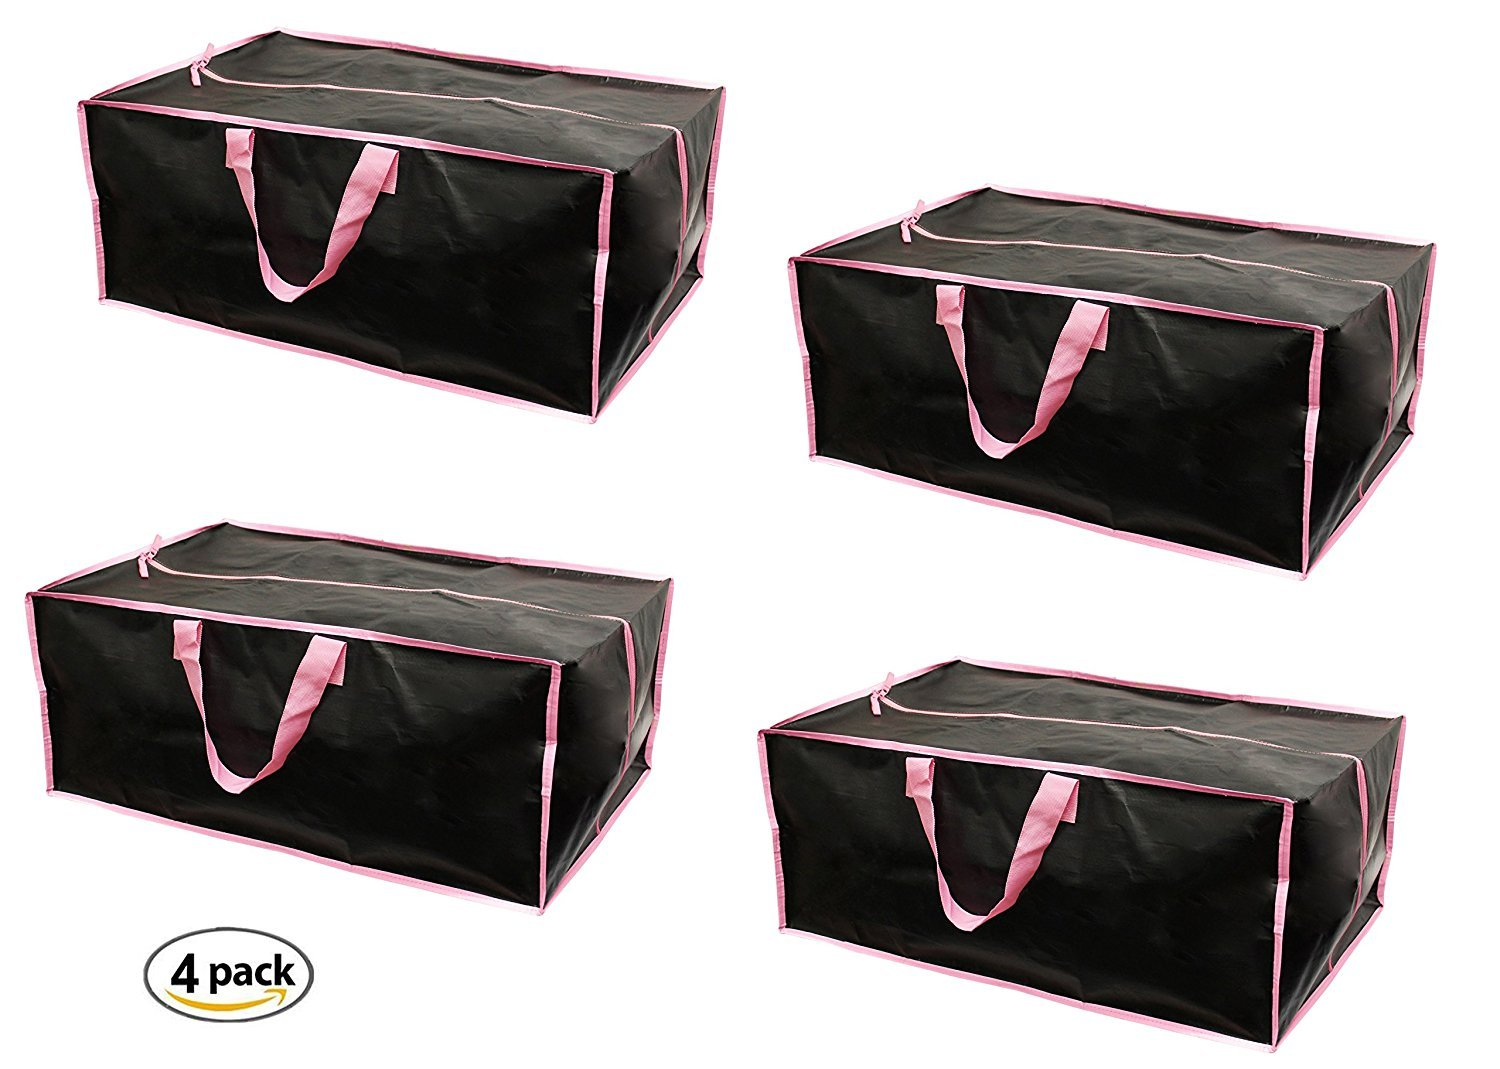 Earthwise Extra Large Reusable Storage Bags Totes Container Backpack Handles w/Zipper closure in Matte Black with Pink Trim Great for MOVING, Compatible with IKEA Frakta Carts (SET OF 4)